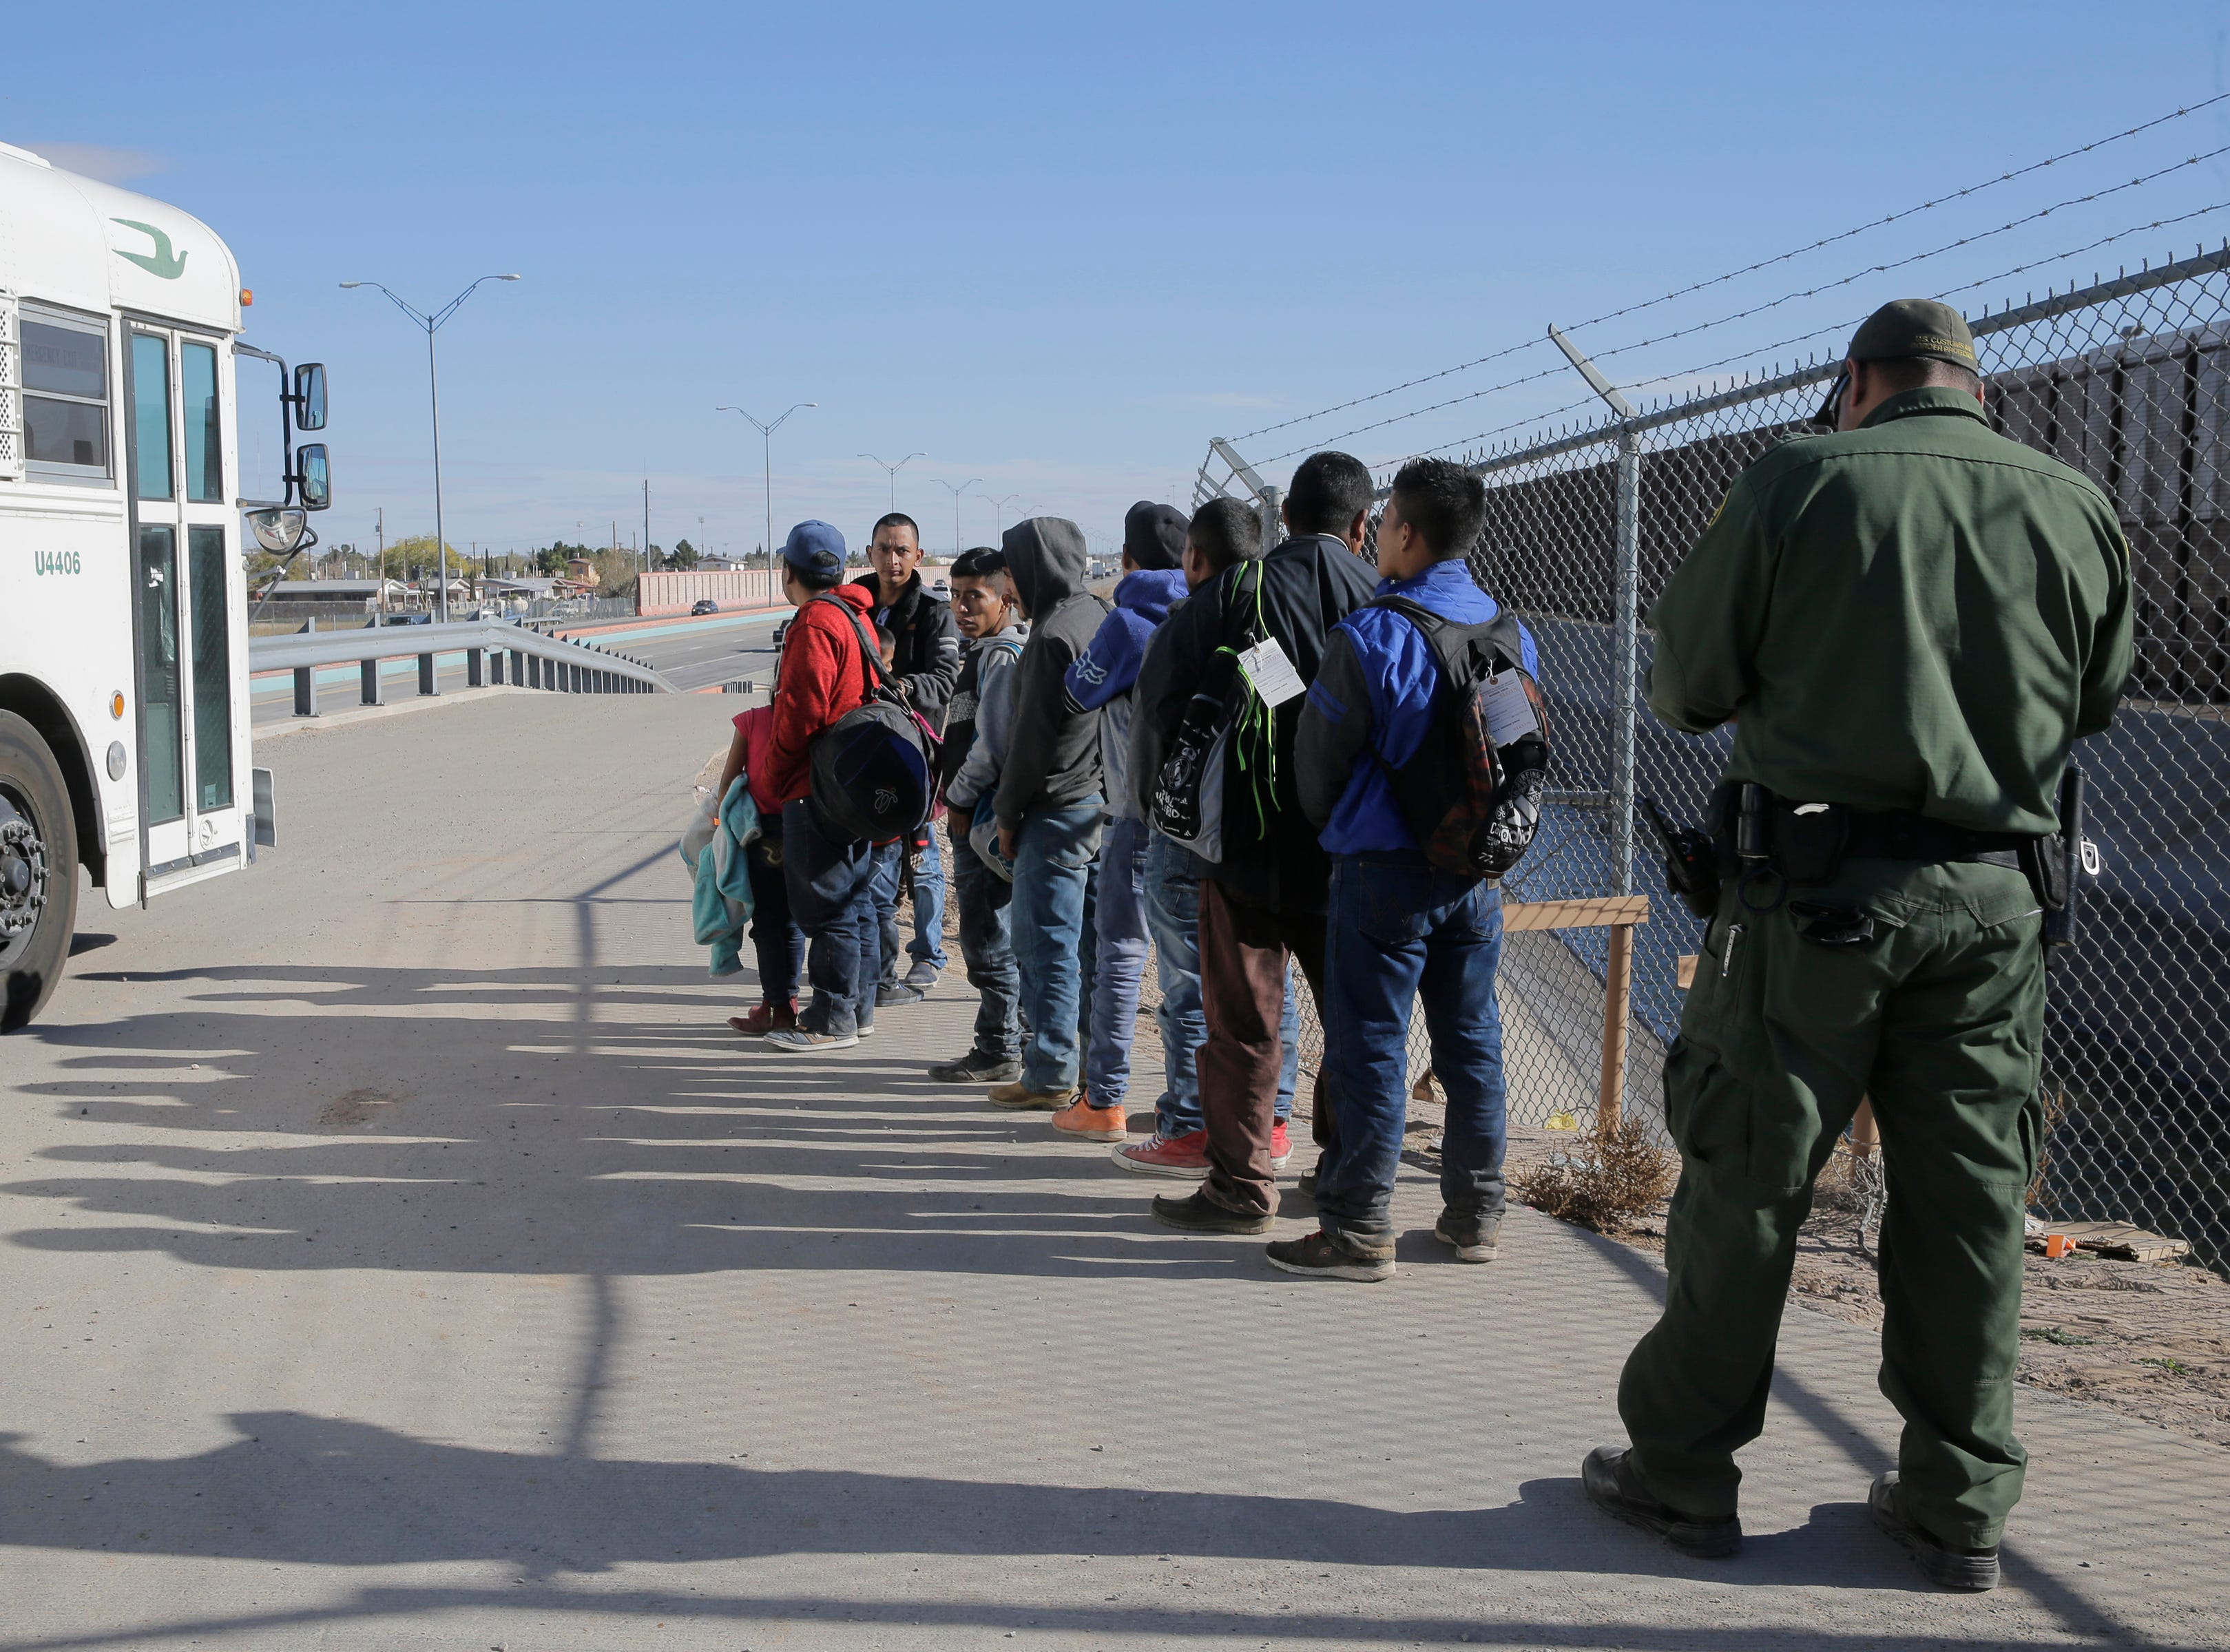 A large group of migrants were detained by Border Patrol Monday at the border fence along the Border Highway near Fonseca. Here the final group of immigrants that were detained wait to board a Border Patrol bus for transport to the El Paso Border Patrol detention facility.